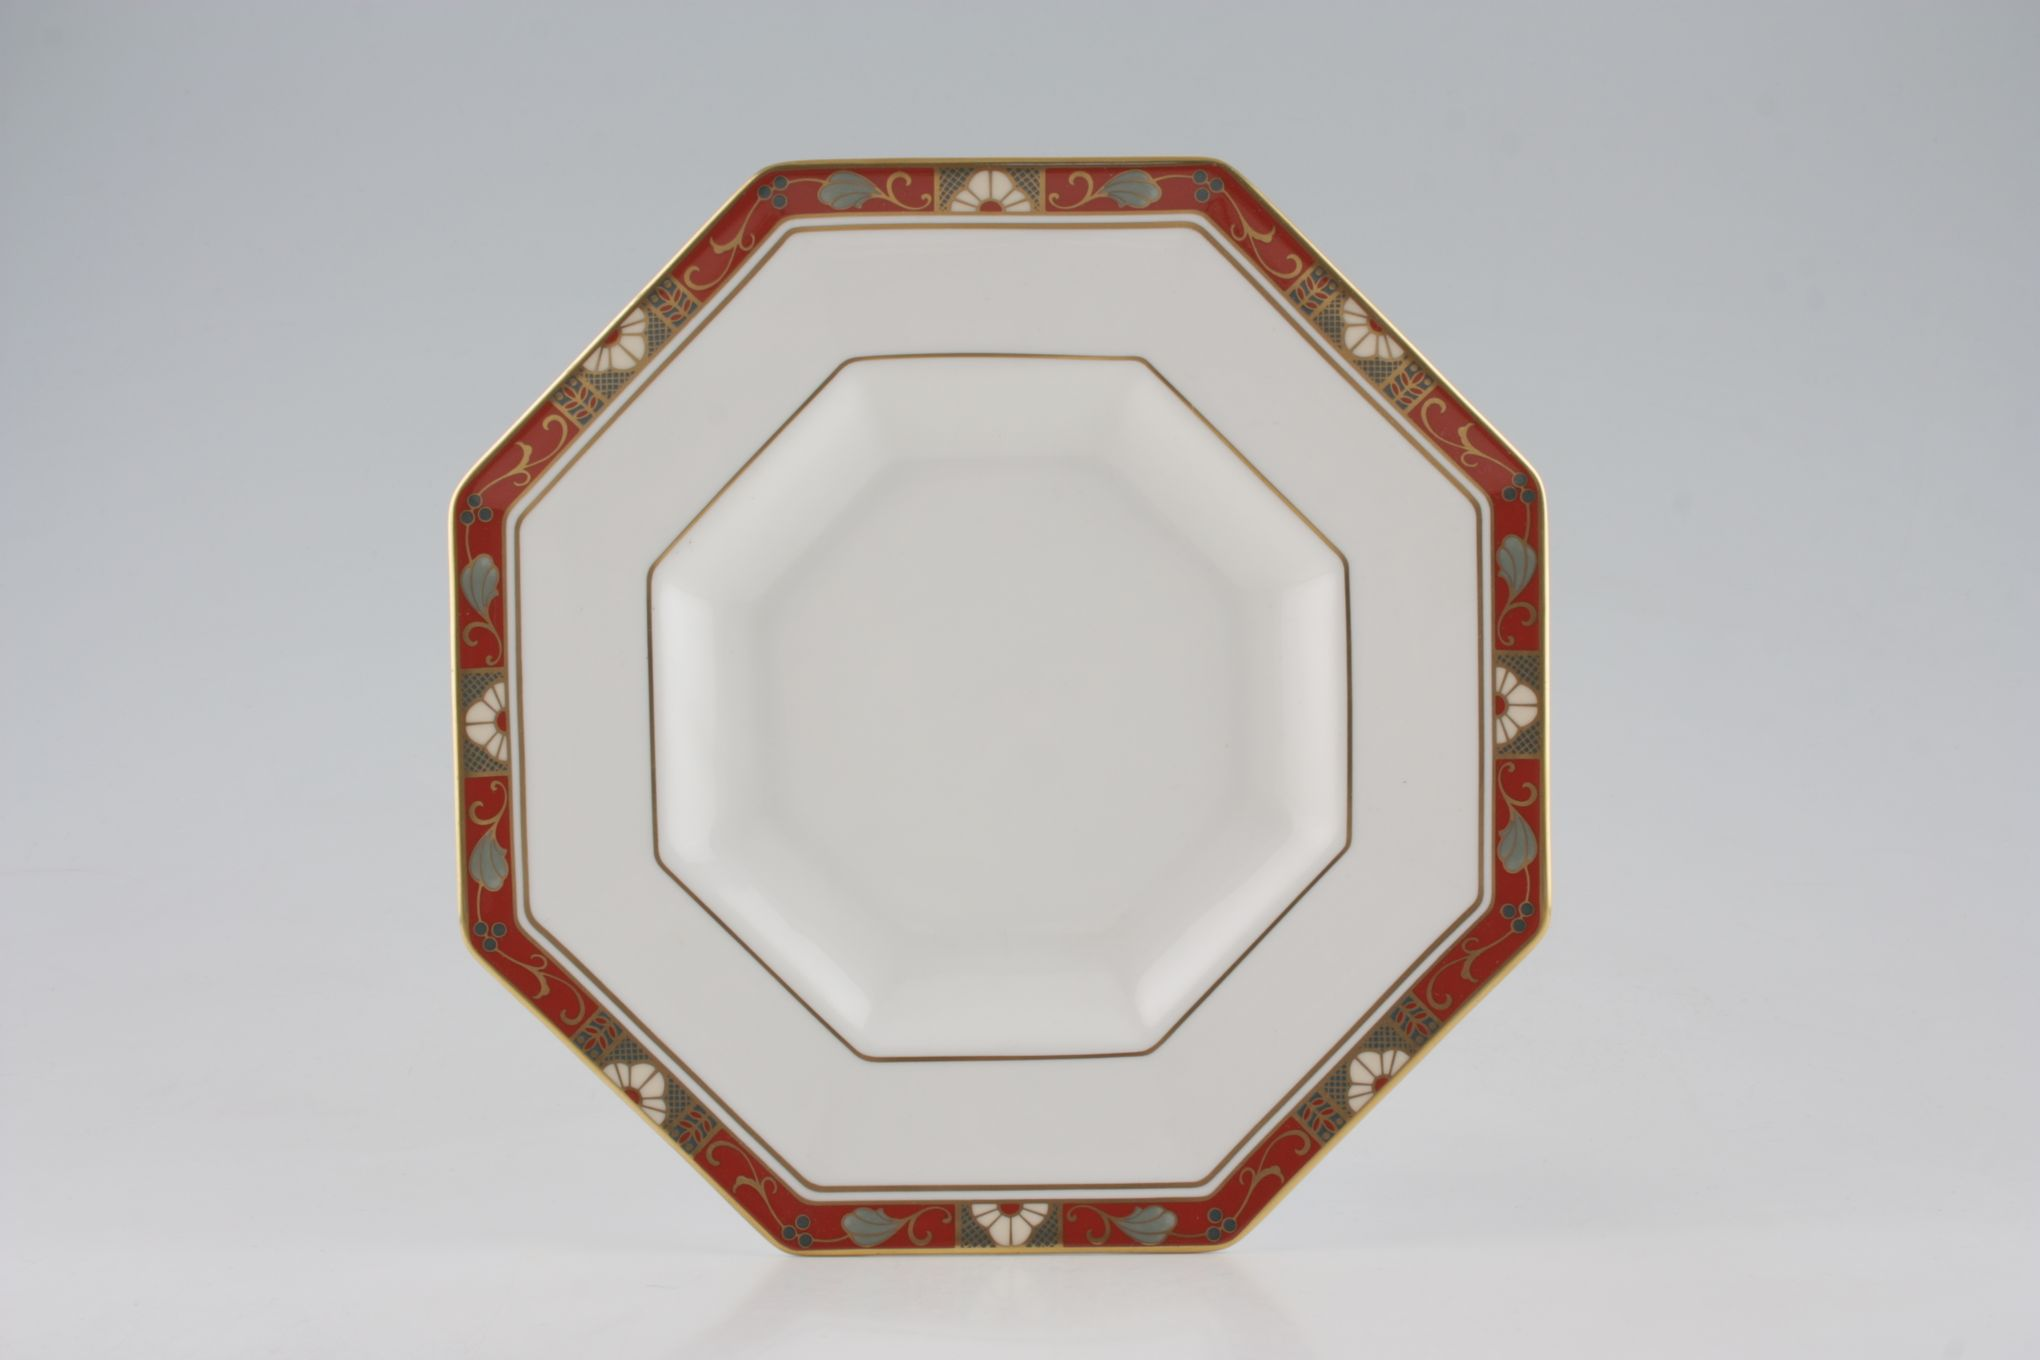 "Royal Crown Derby Cloisonne - A1317 Breakfast / Salad / Luncheon Plate Octagonal - Deep 8 3/4"" thumb 1"